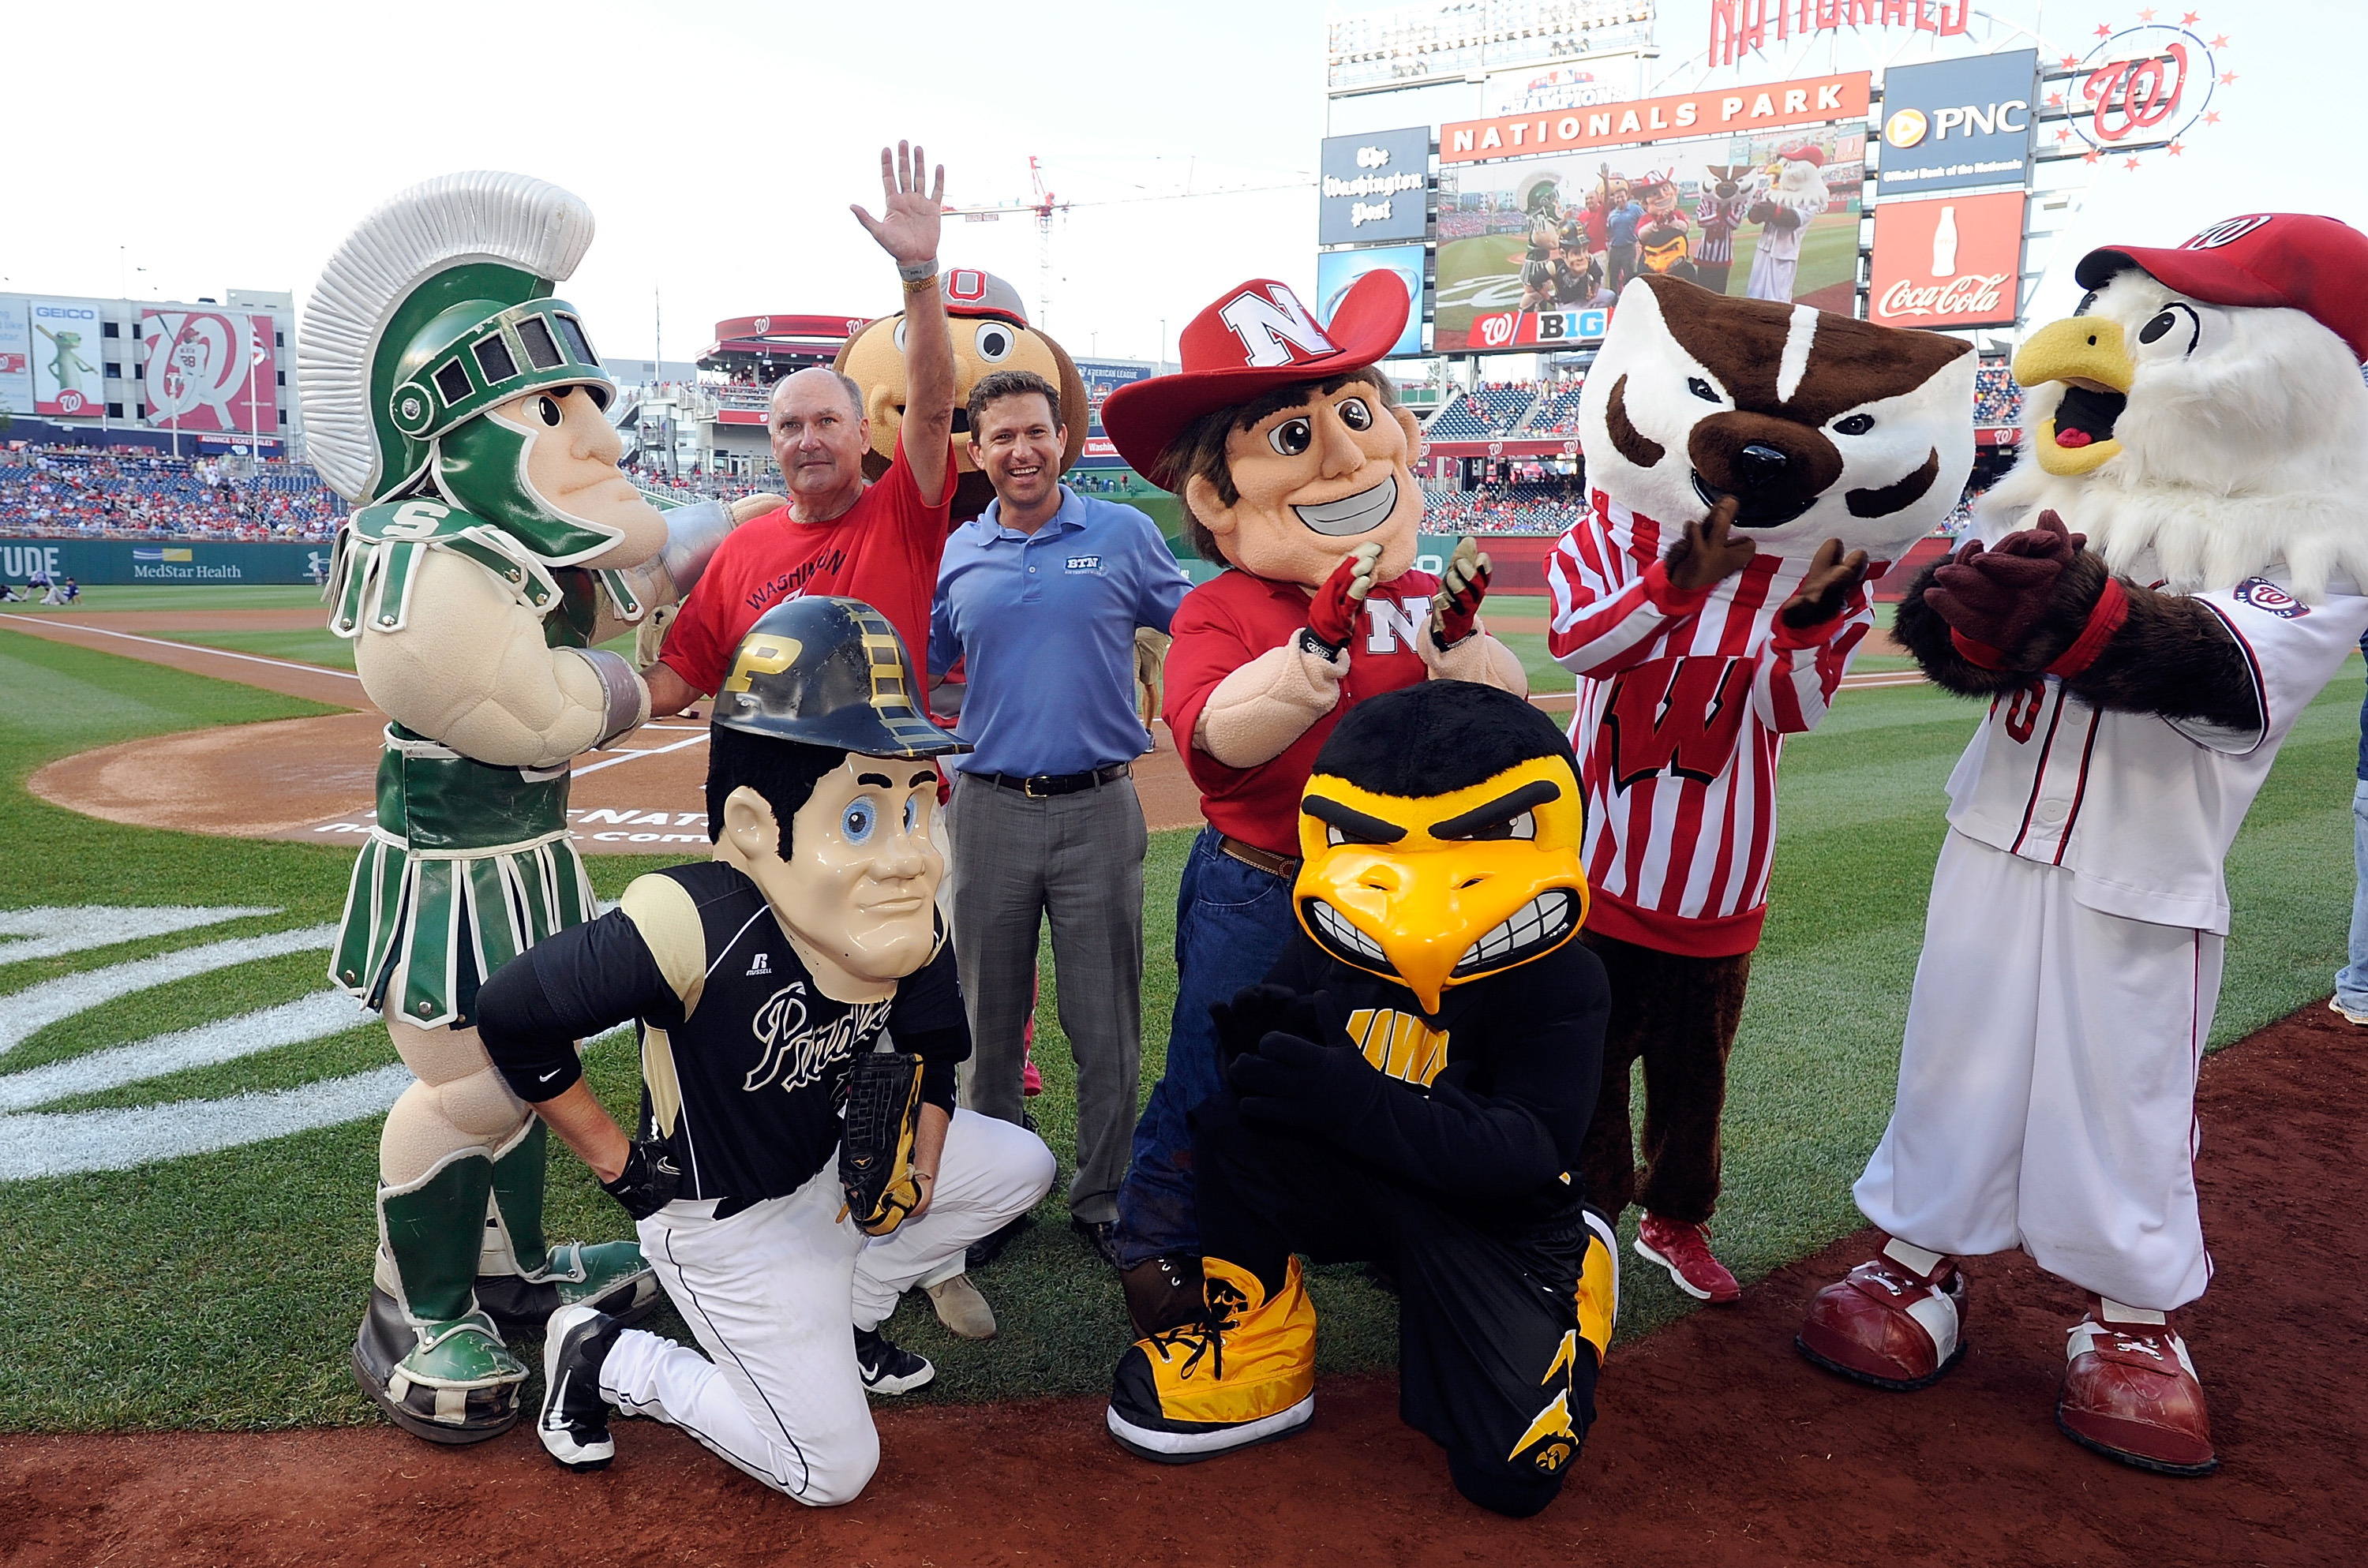 This is pretty much the only pic that shows up when searching for B1G baseball so get used to it